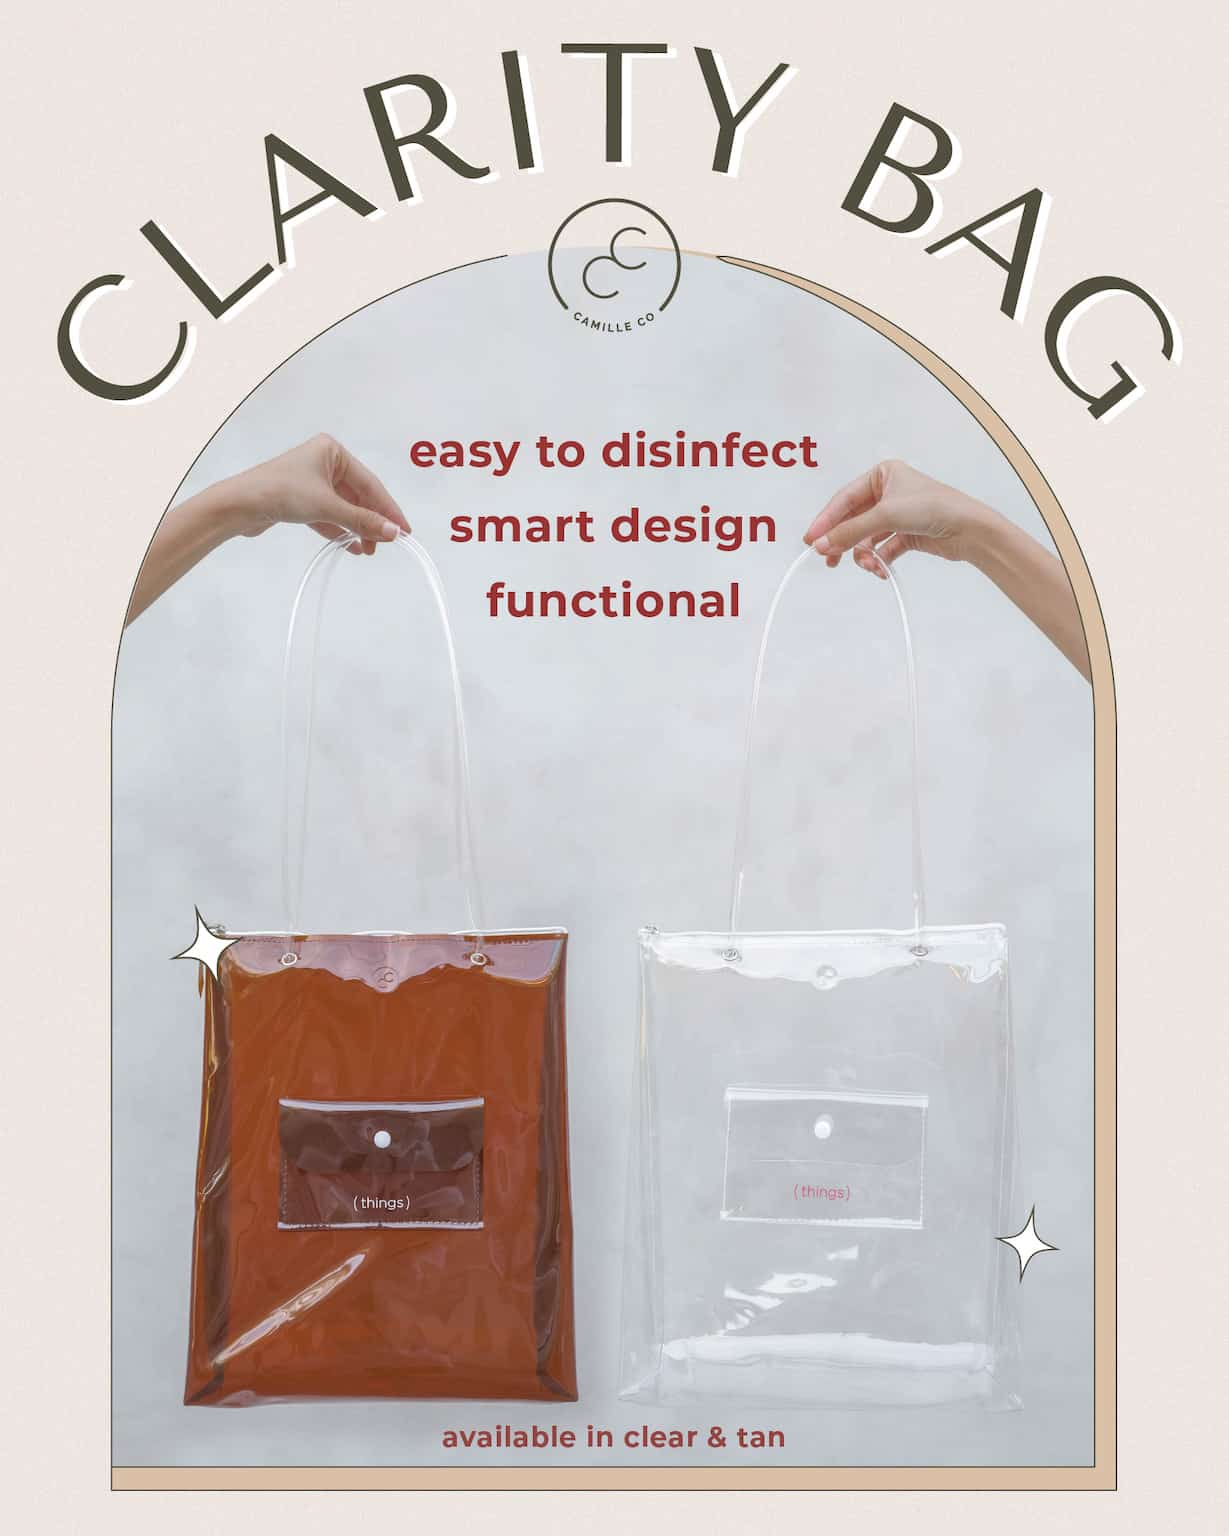 Clarity bag disinfection